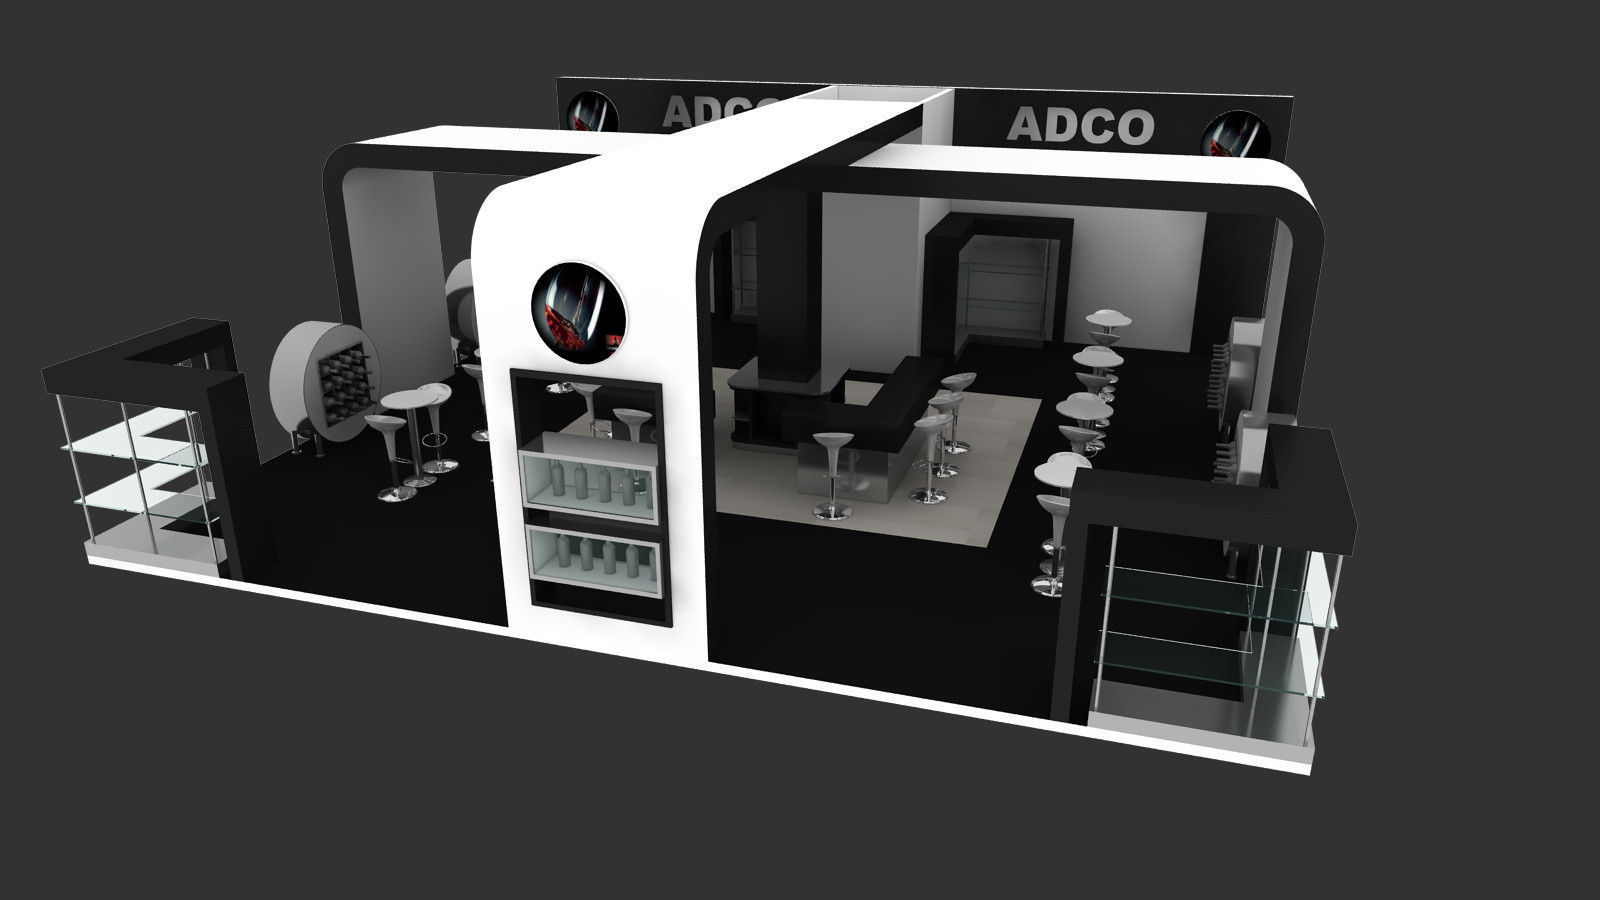 D Exhibition Designer Jobs In : Adco exhibition stand design d model animated